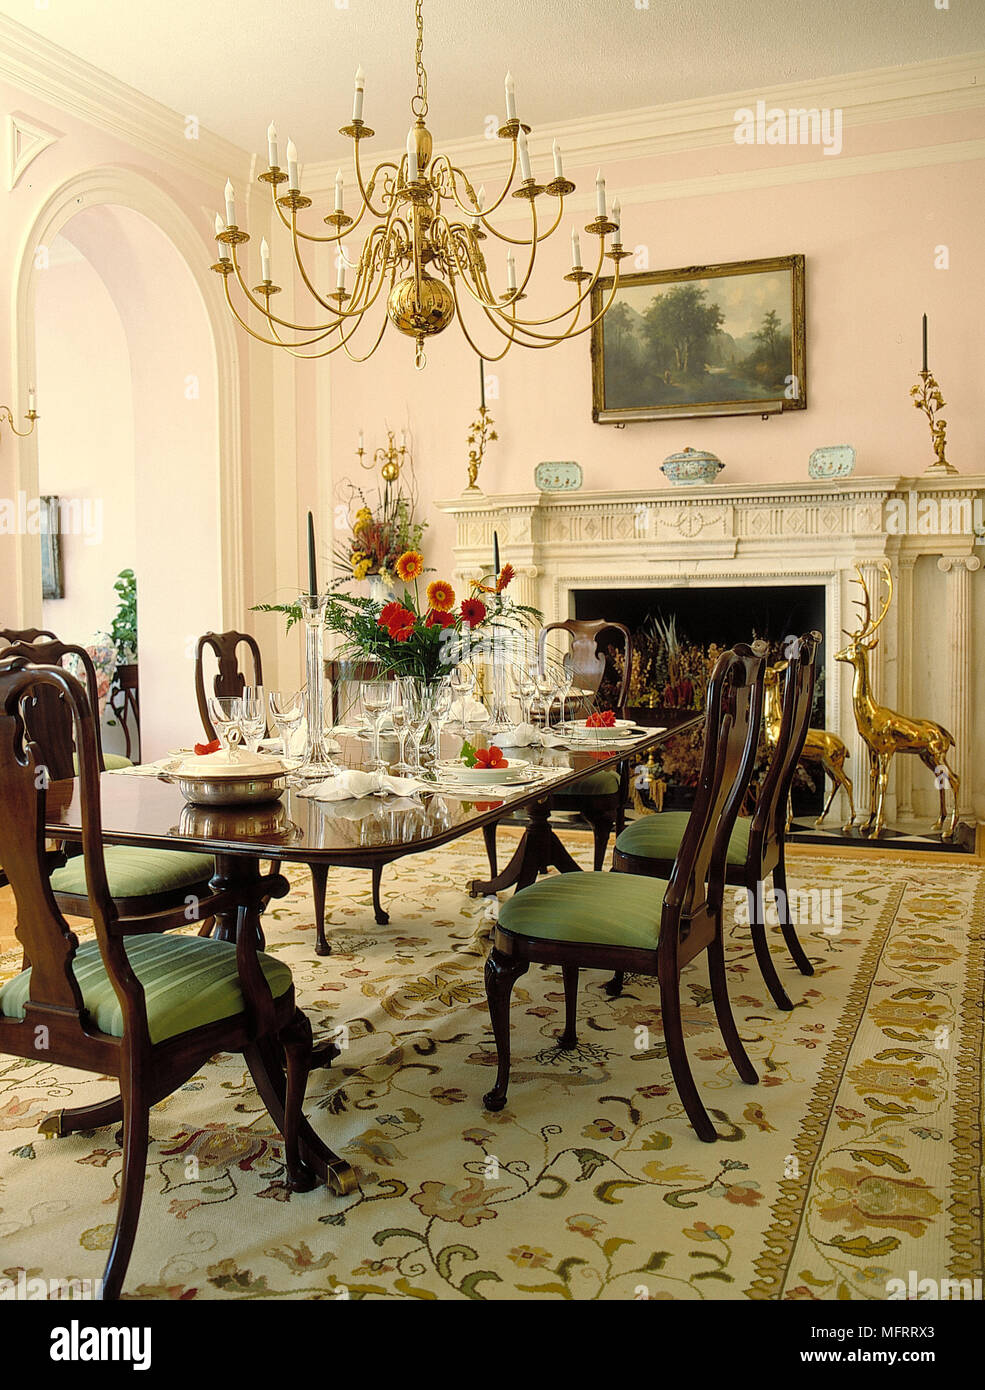 chandelier over wooden dining table and chairs in opulent room furniture n70 furniture